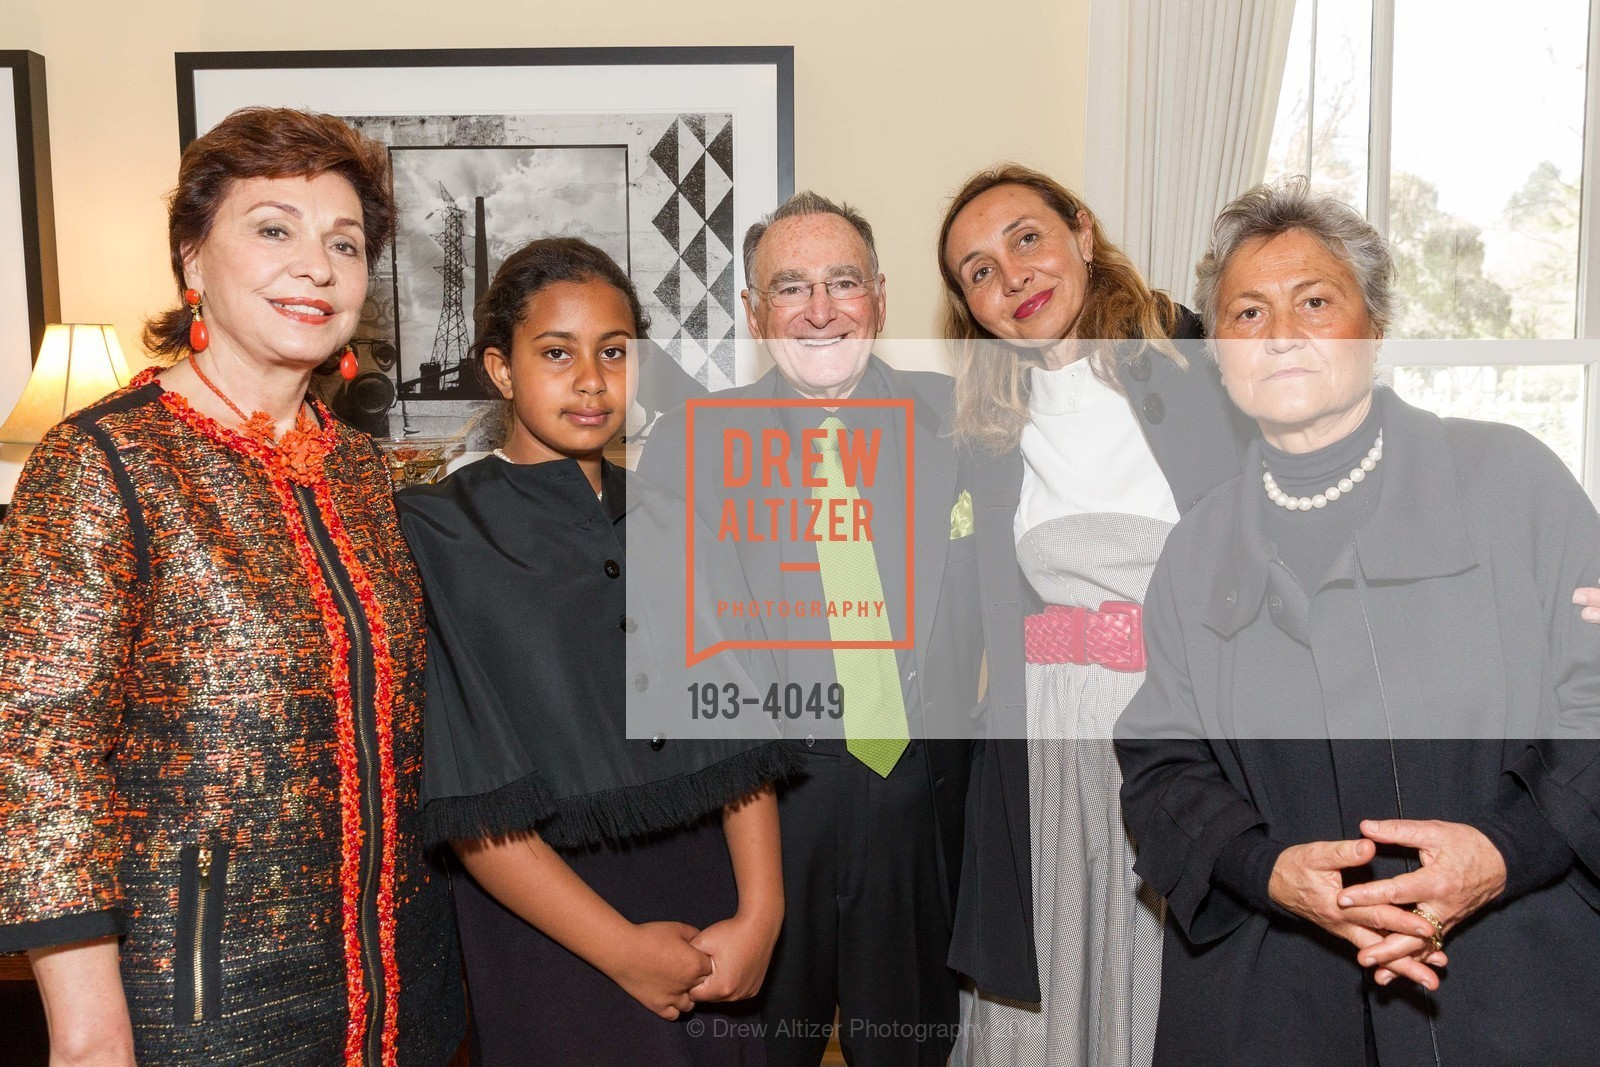 Maria Manetti Shrem, Camilla Ruini, Jan Shrem, Beatrice Ruini, Corina Manetti, Photo #193-4049